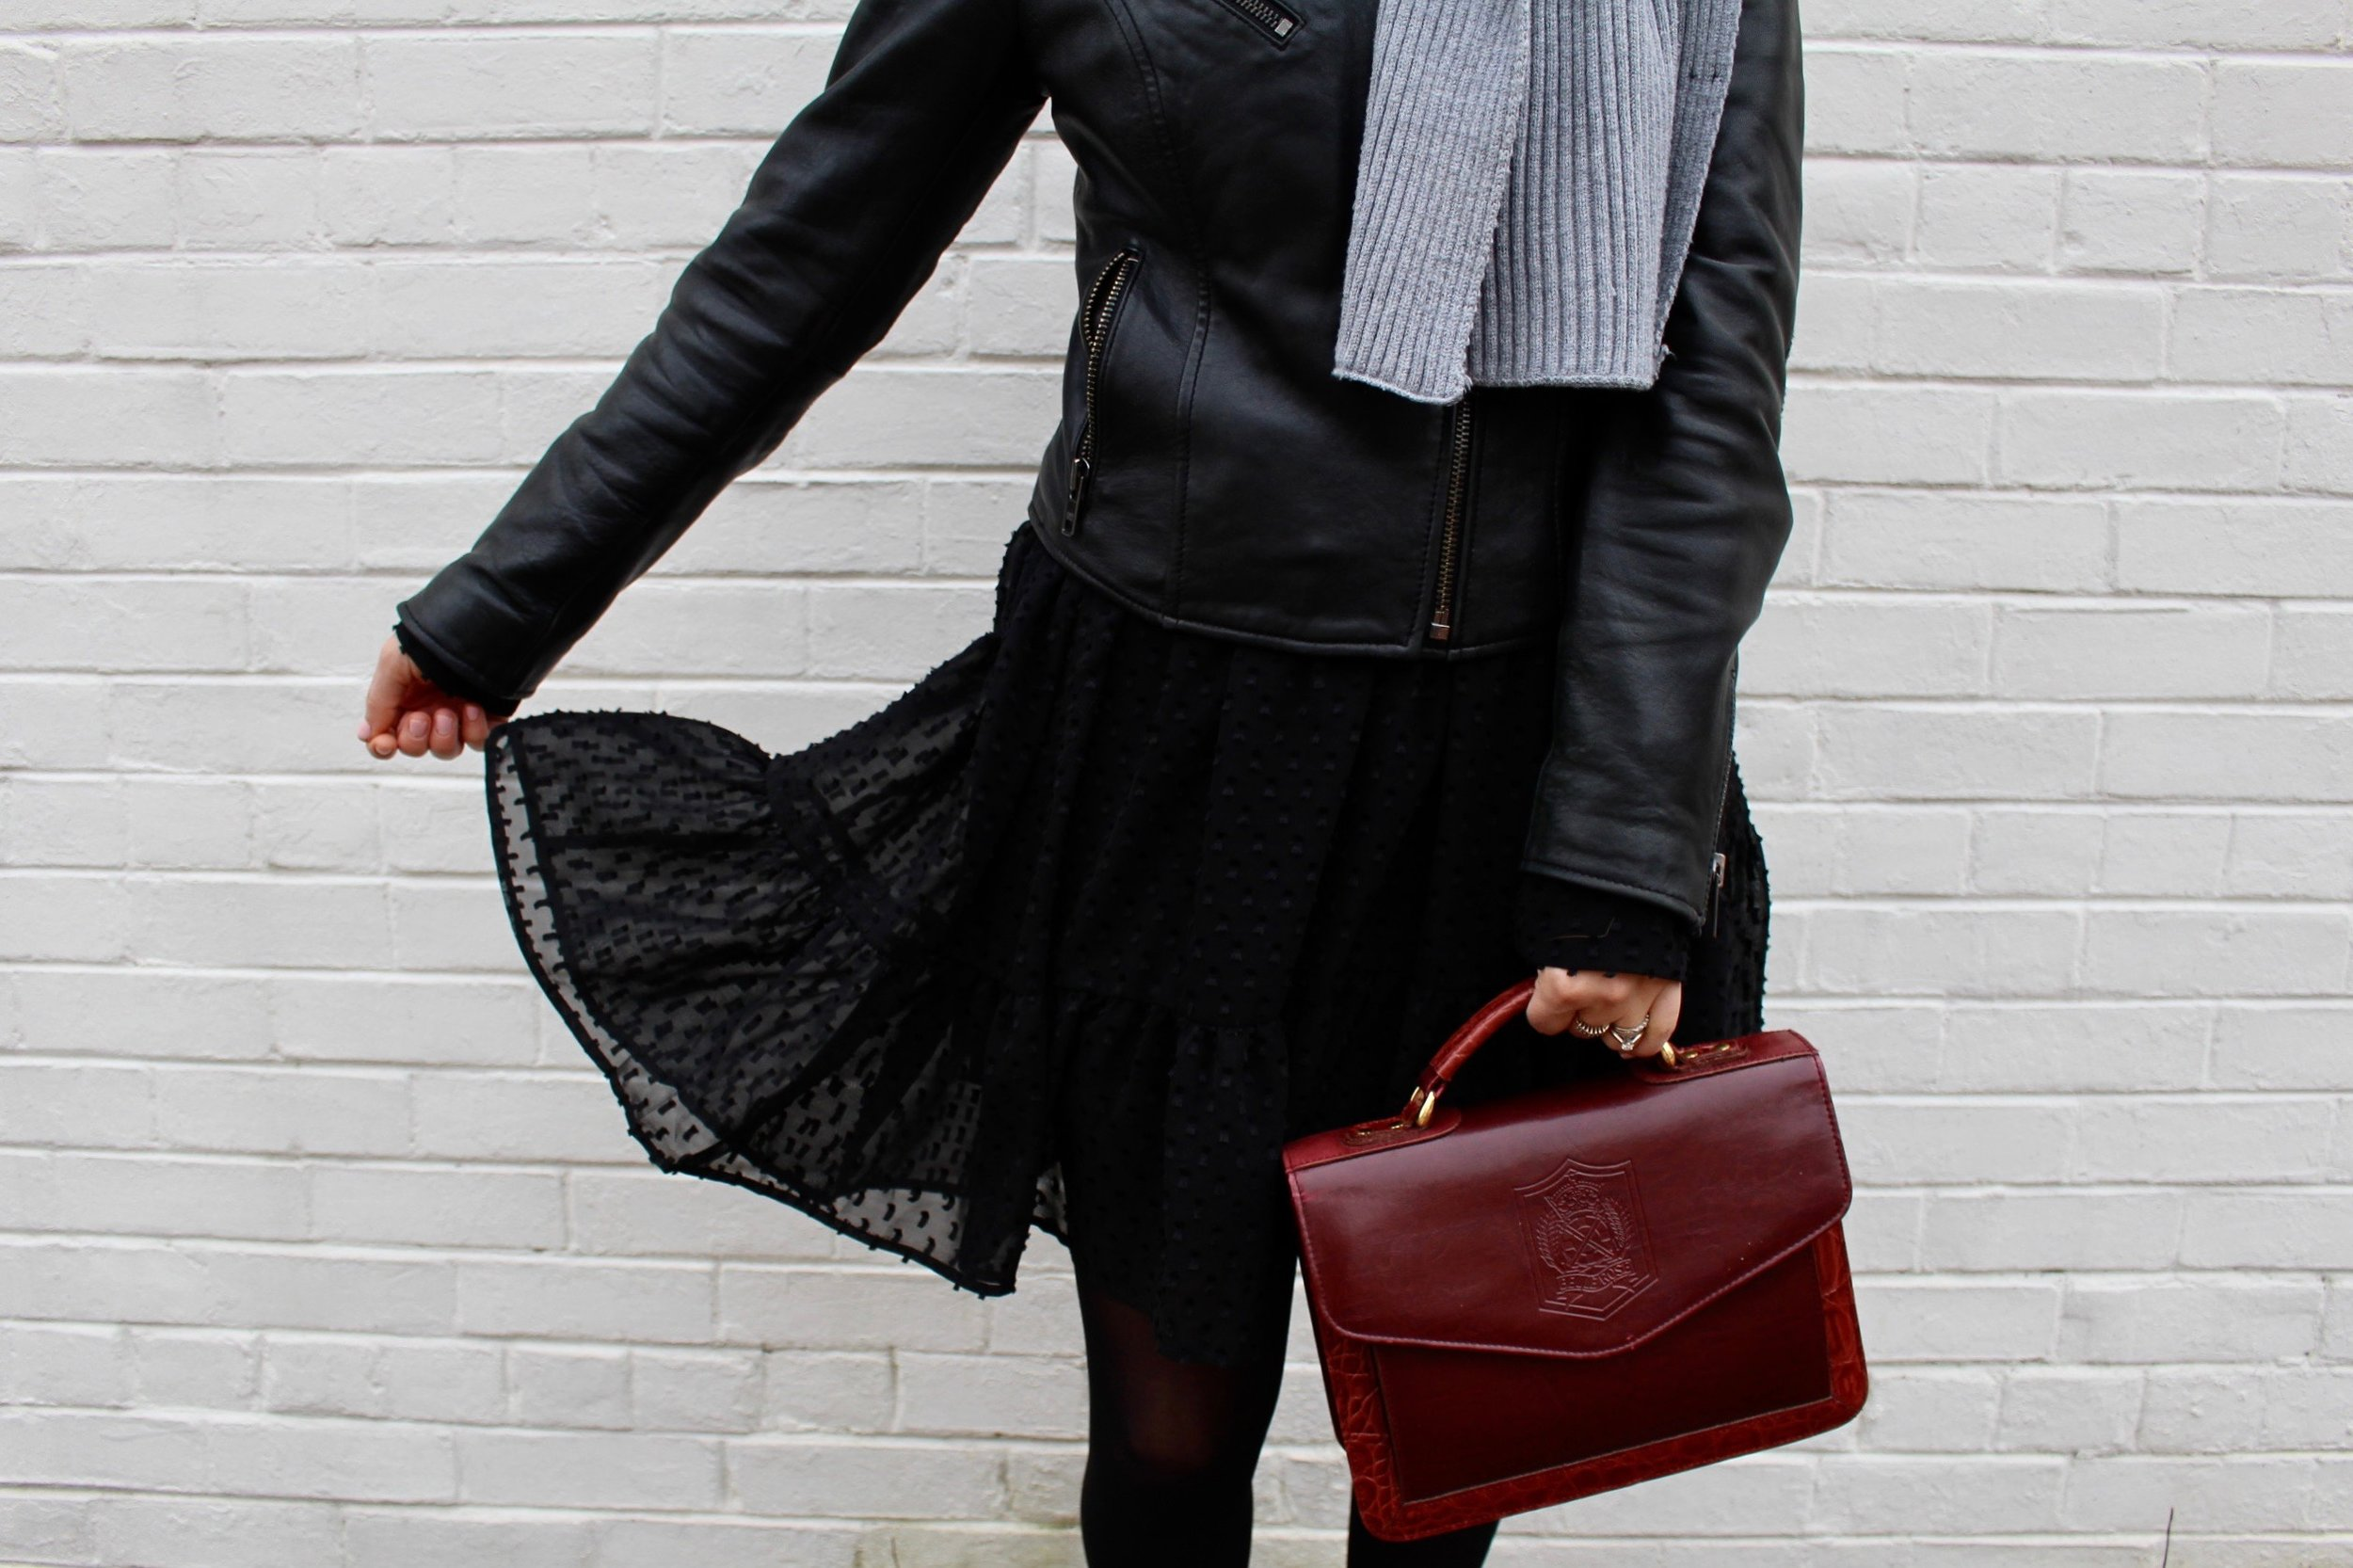 DRESSED UP DRESSED DOWN / STYLE / NICOLEMCARUSO.COM